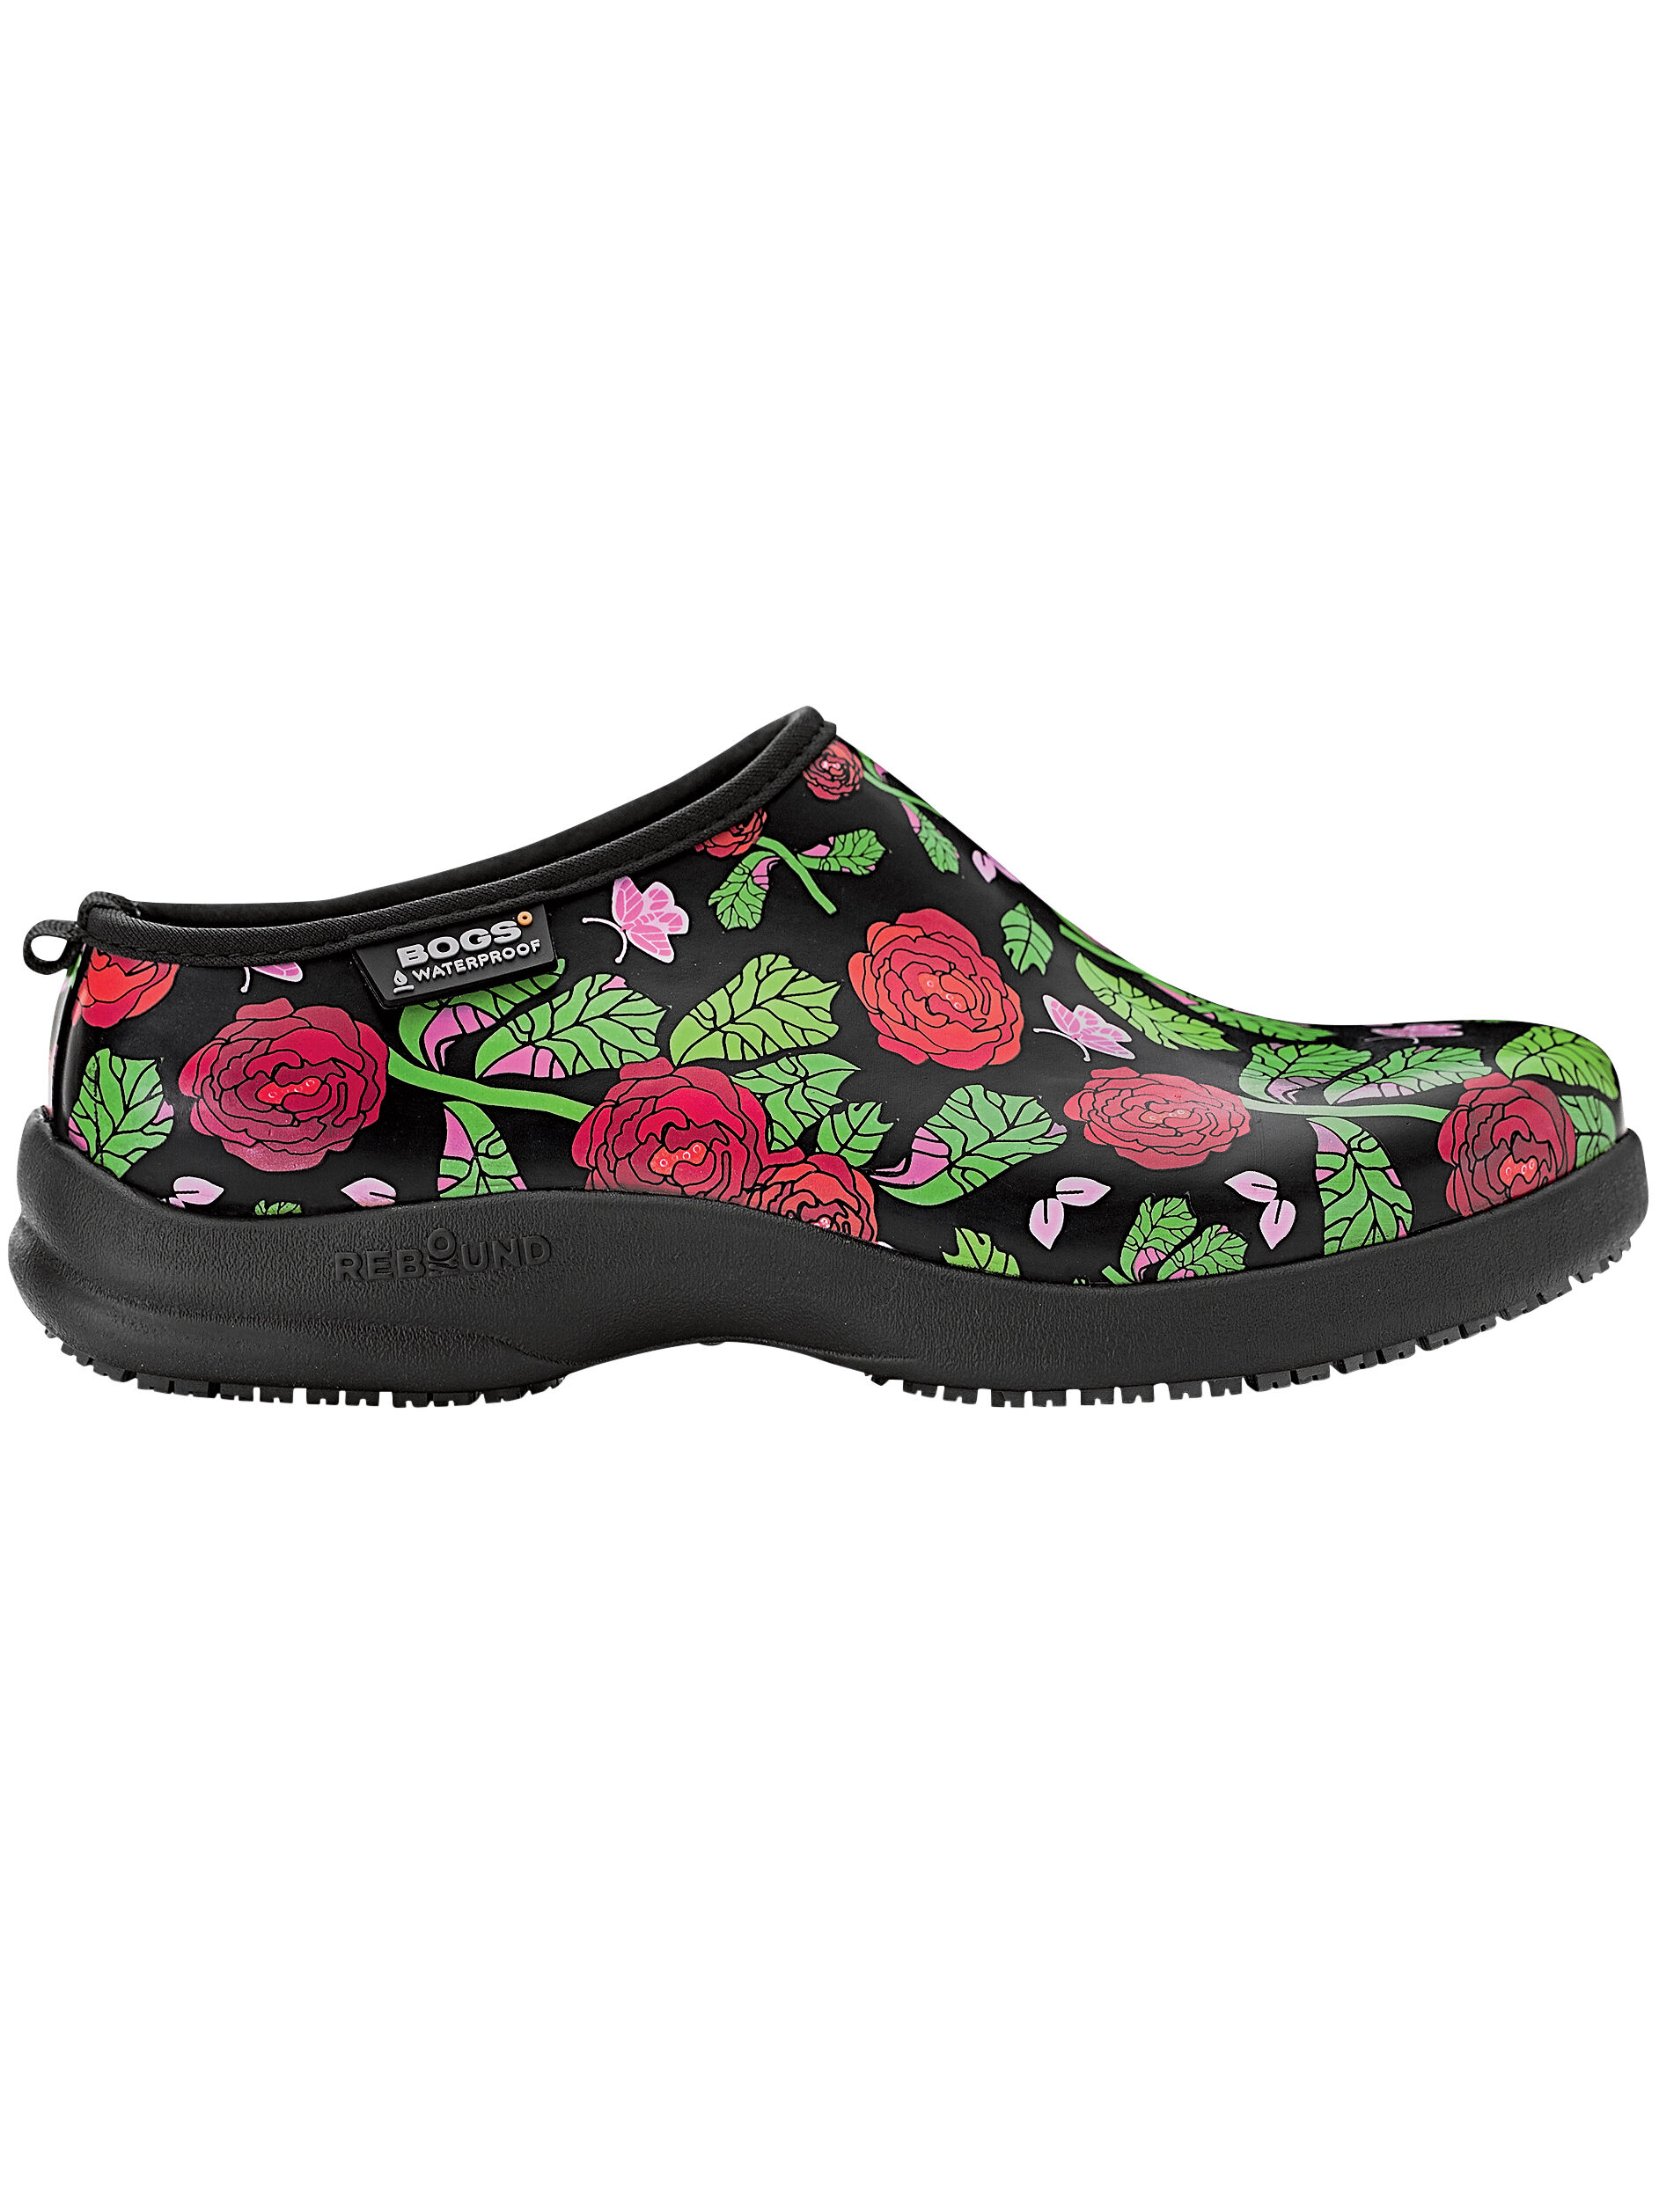 Gardening boots waterproof pull on ankle boots womens for Garden boots for women